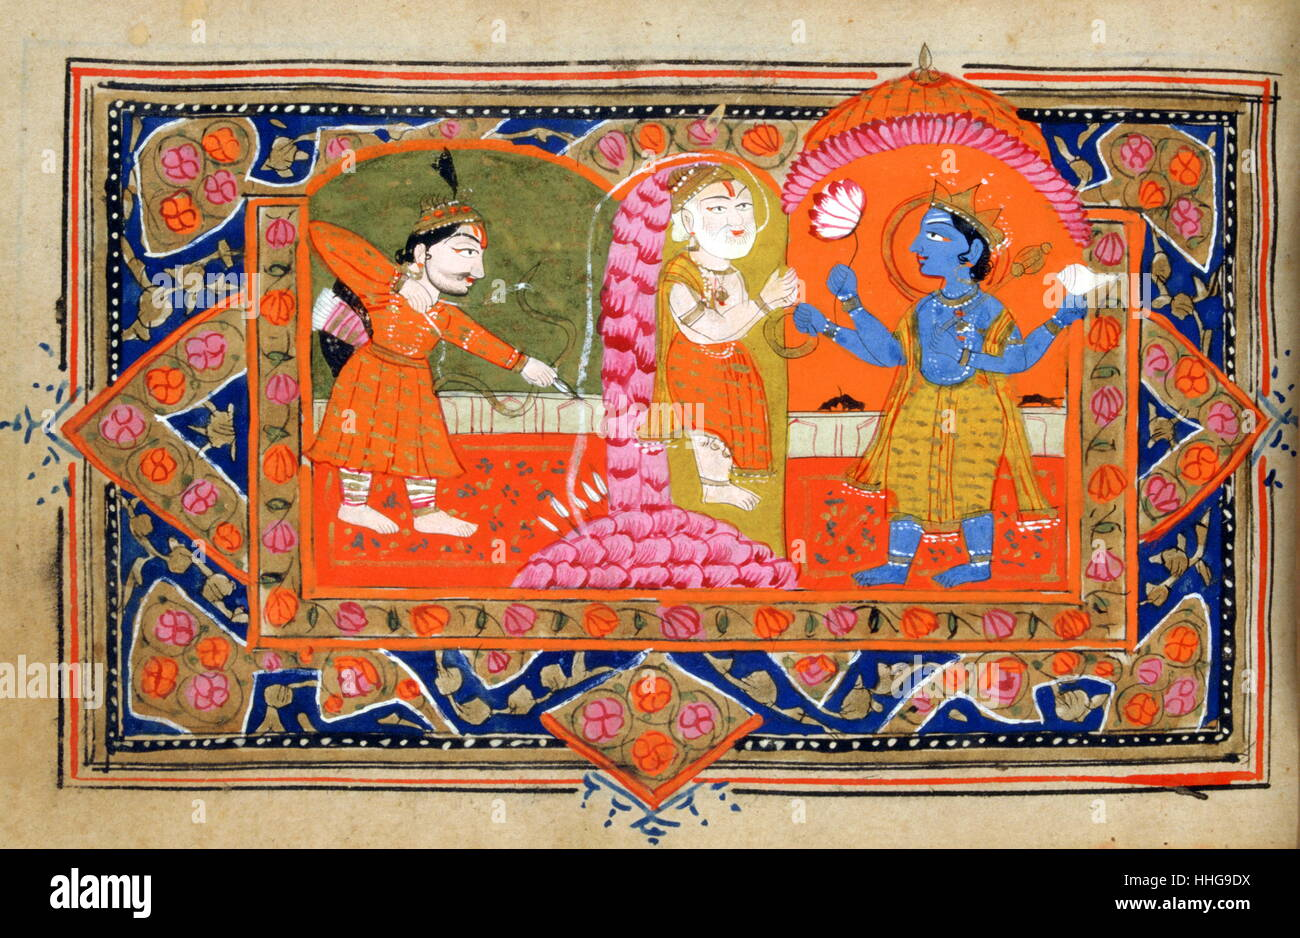 18th century Indian manuscript about the life of Krishna. - Stock Image